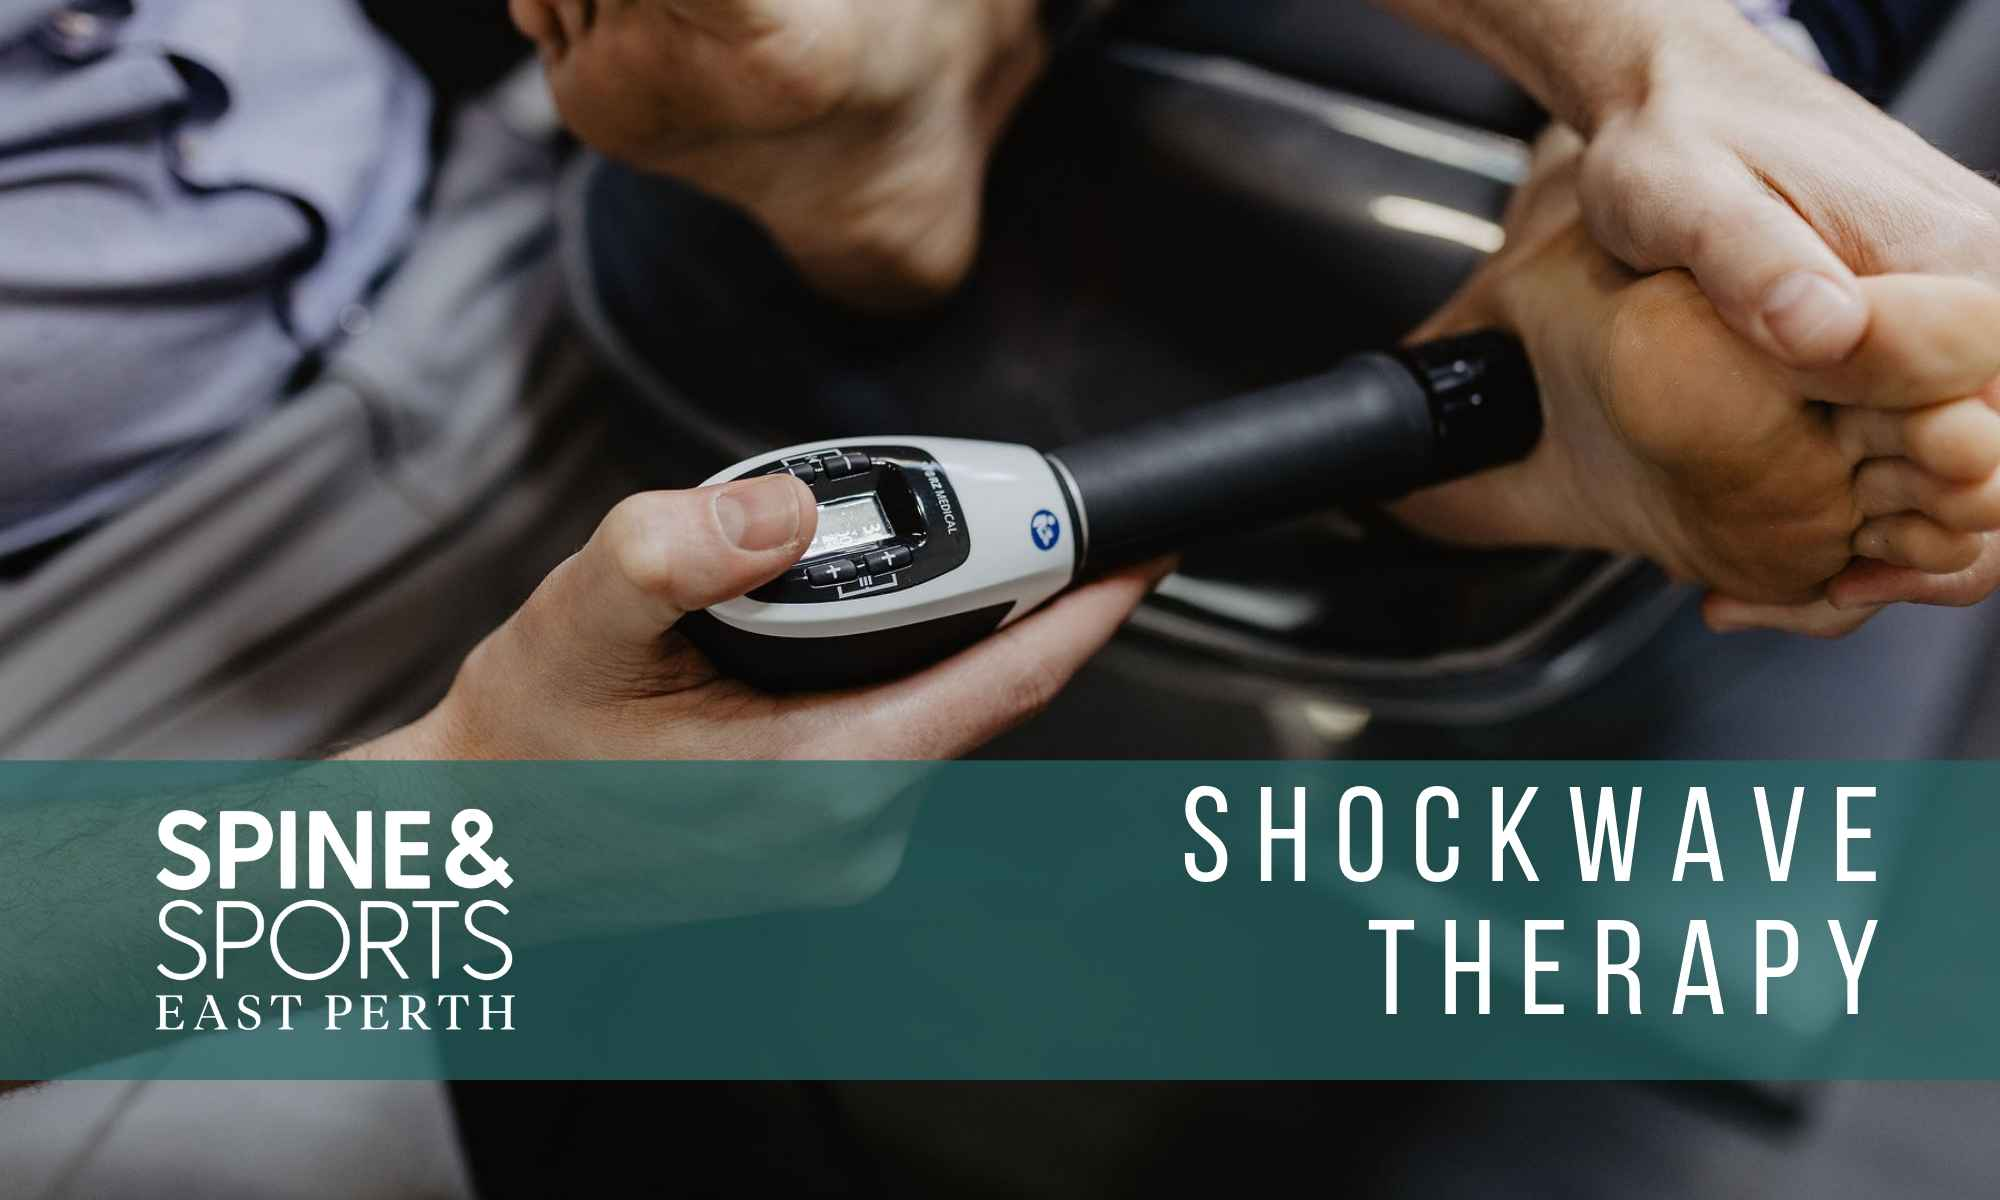 East Perth Shockwave therapy at Spine & Sports Centre.jpg